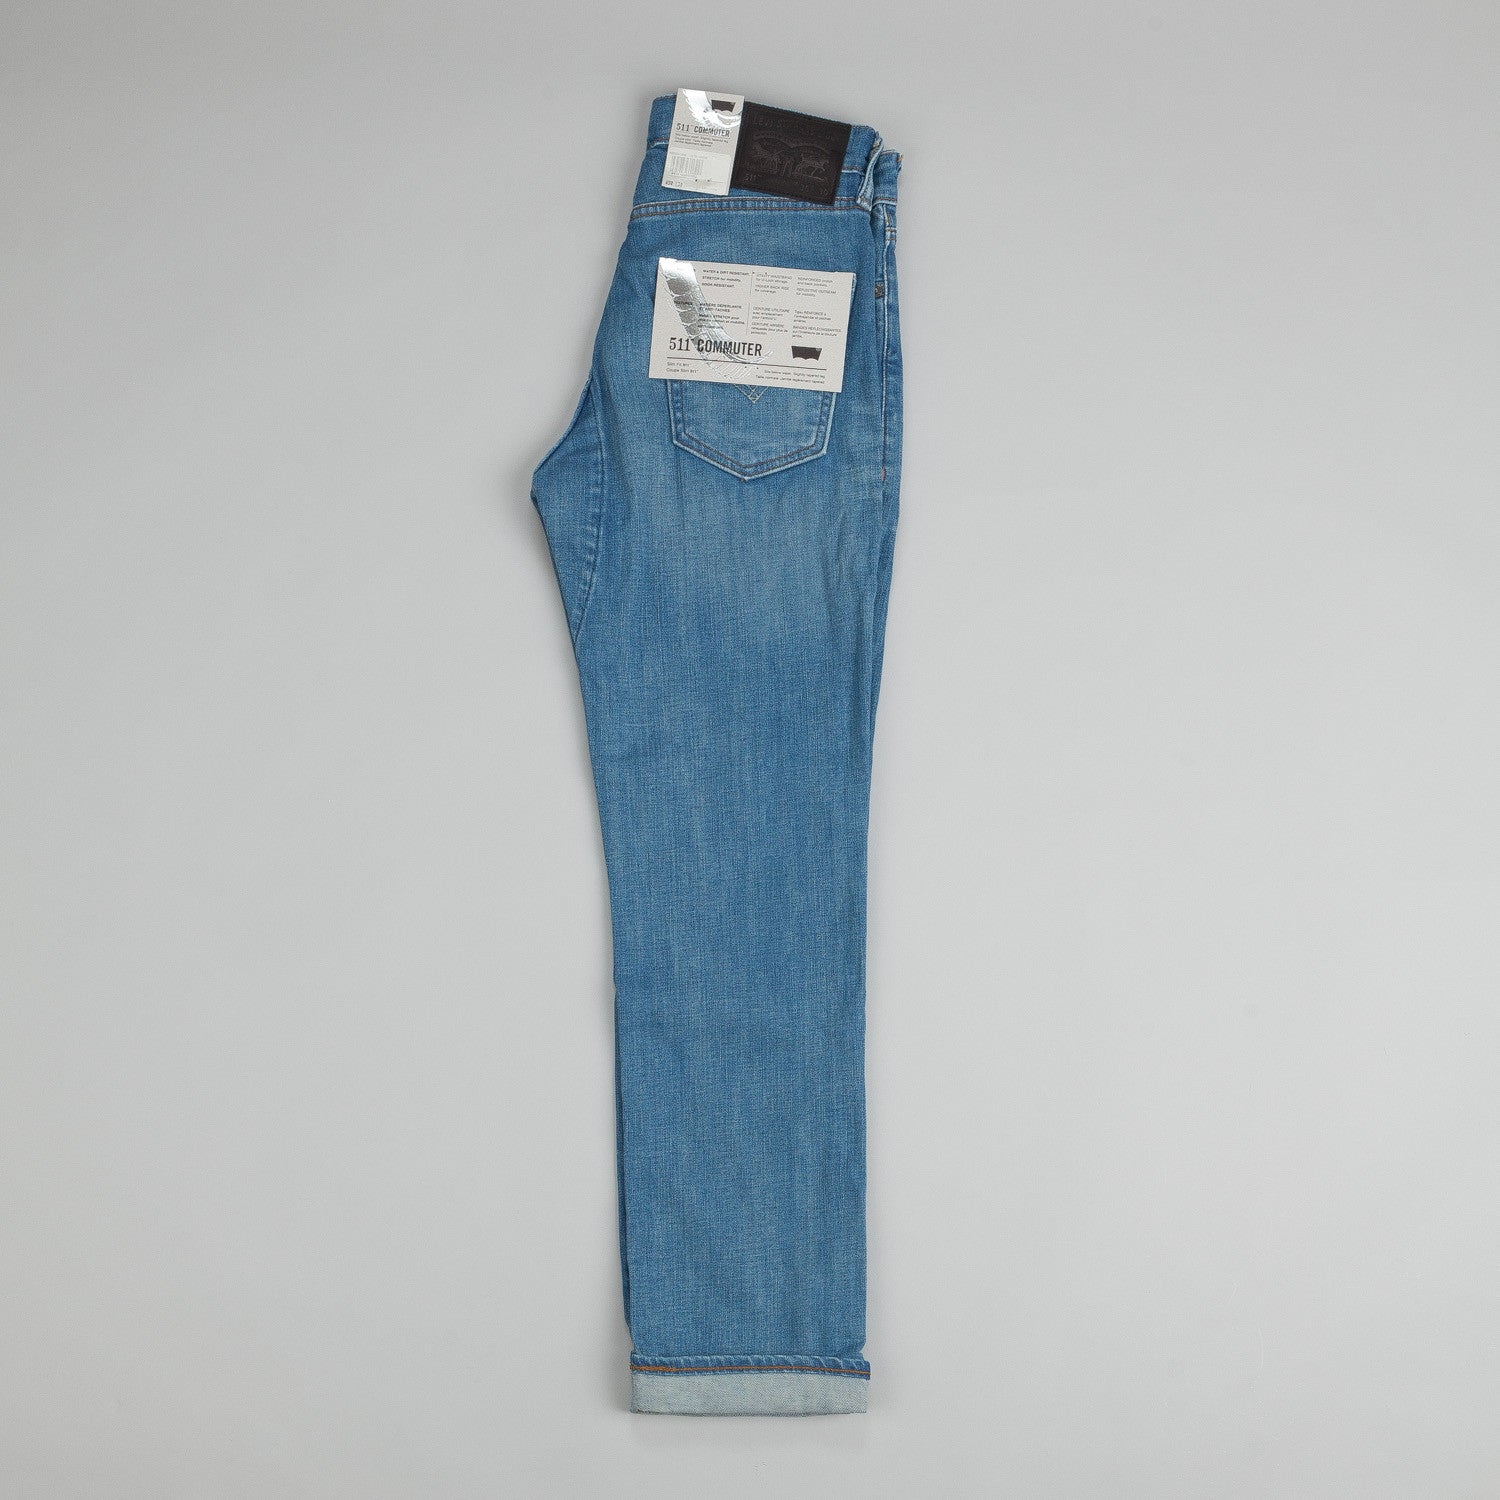 Levi's® Commuter Series 511 Slim Jeans Indigo Light Chain